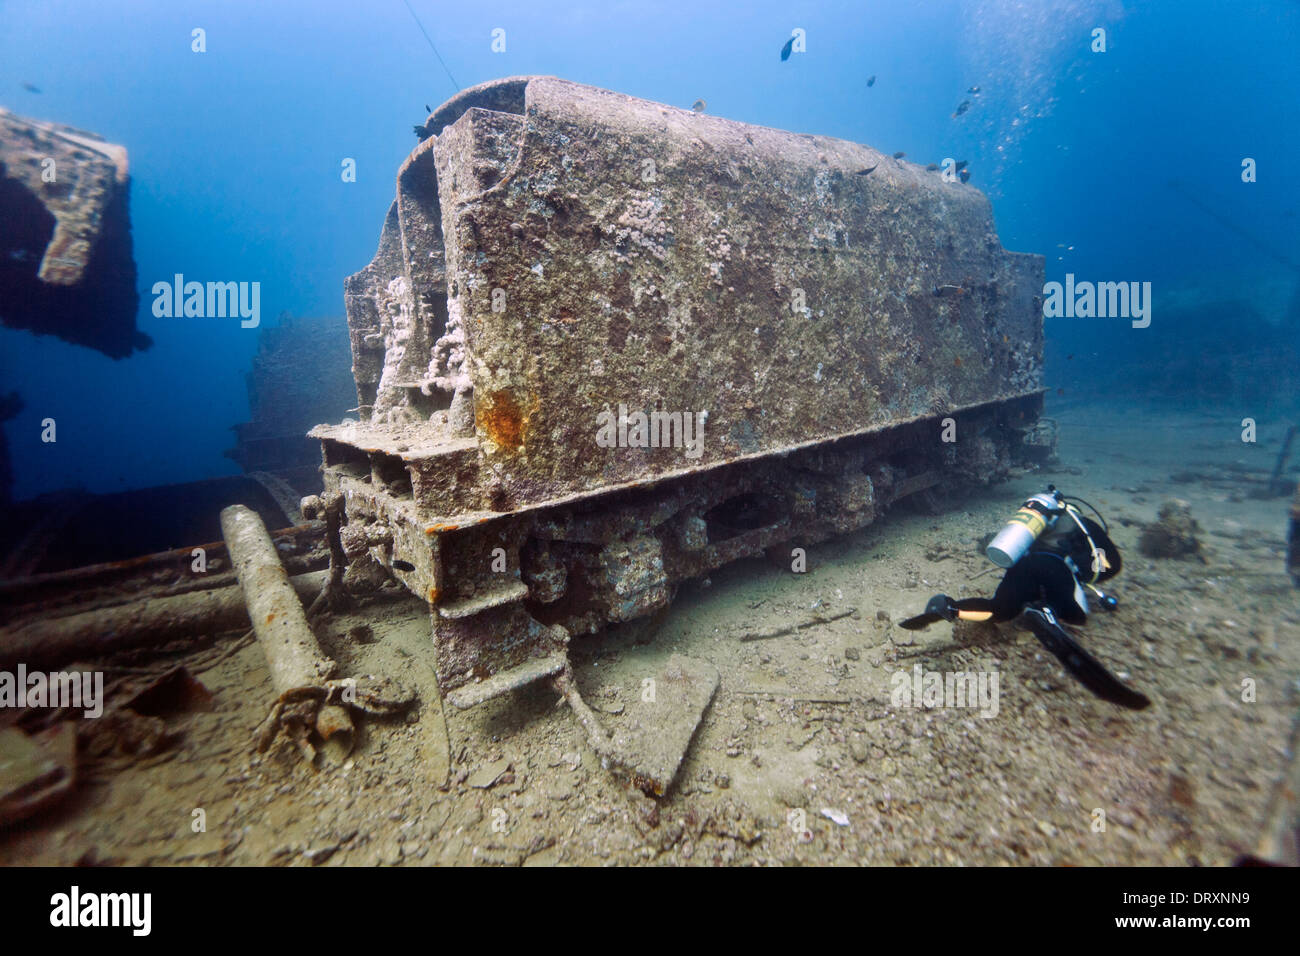 A scuba diver passes a coal tender on the wreck of the SS Thislegorm, Red Sea, Egypt - Stock Image